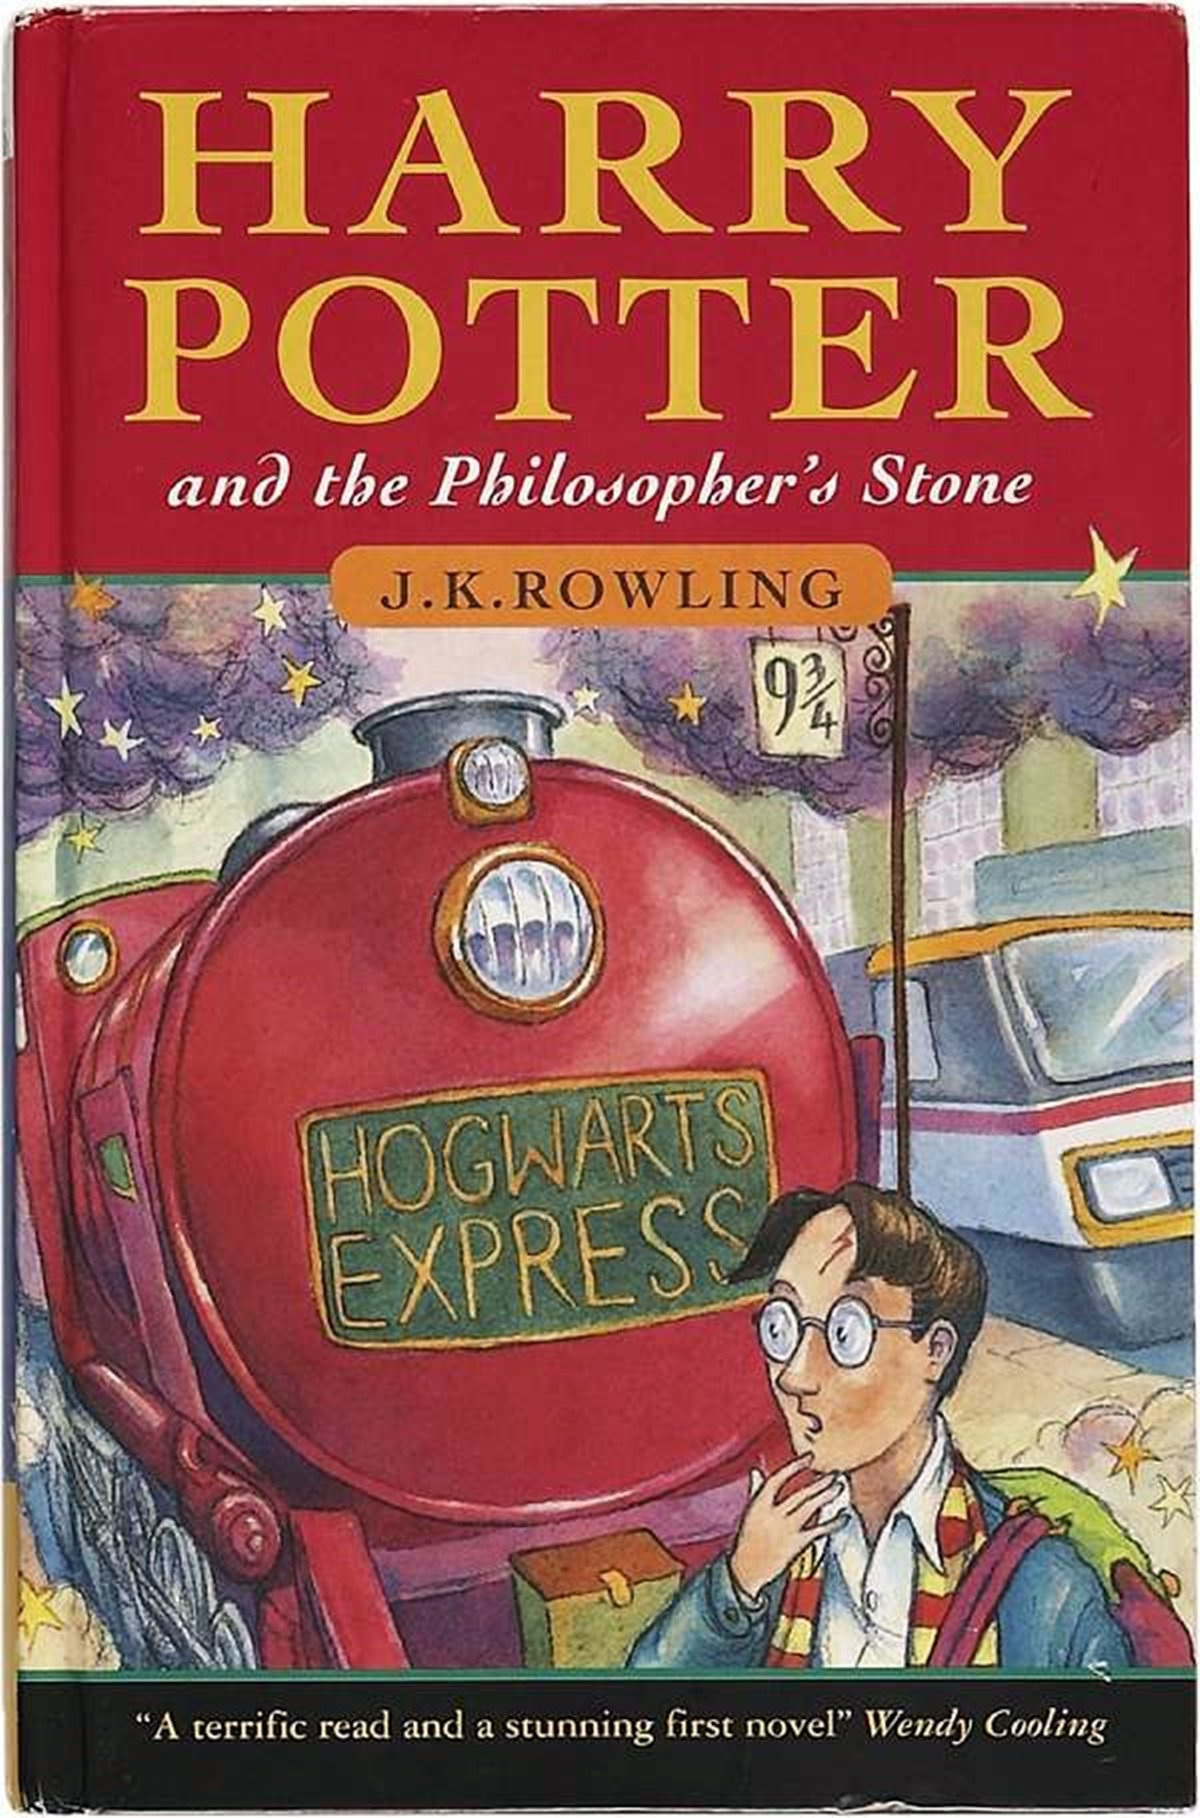 4 36 Are Your Harry Potter Books Worth A Lot Of Money? Here's How To Find Out!